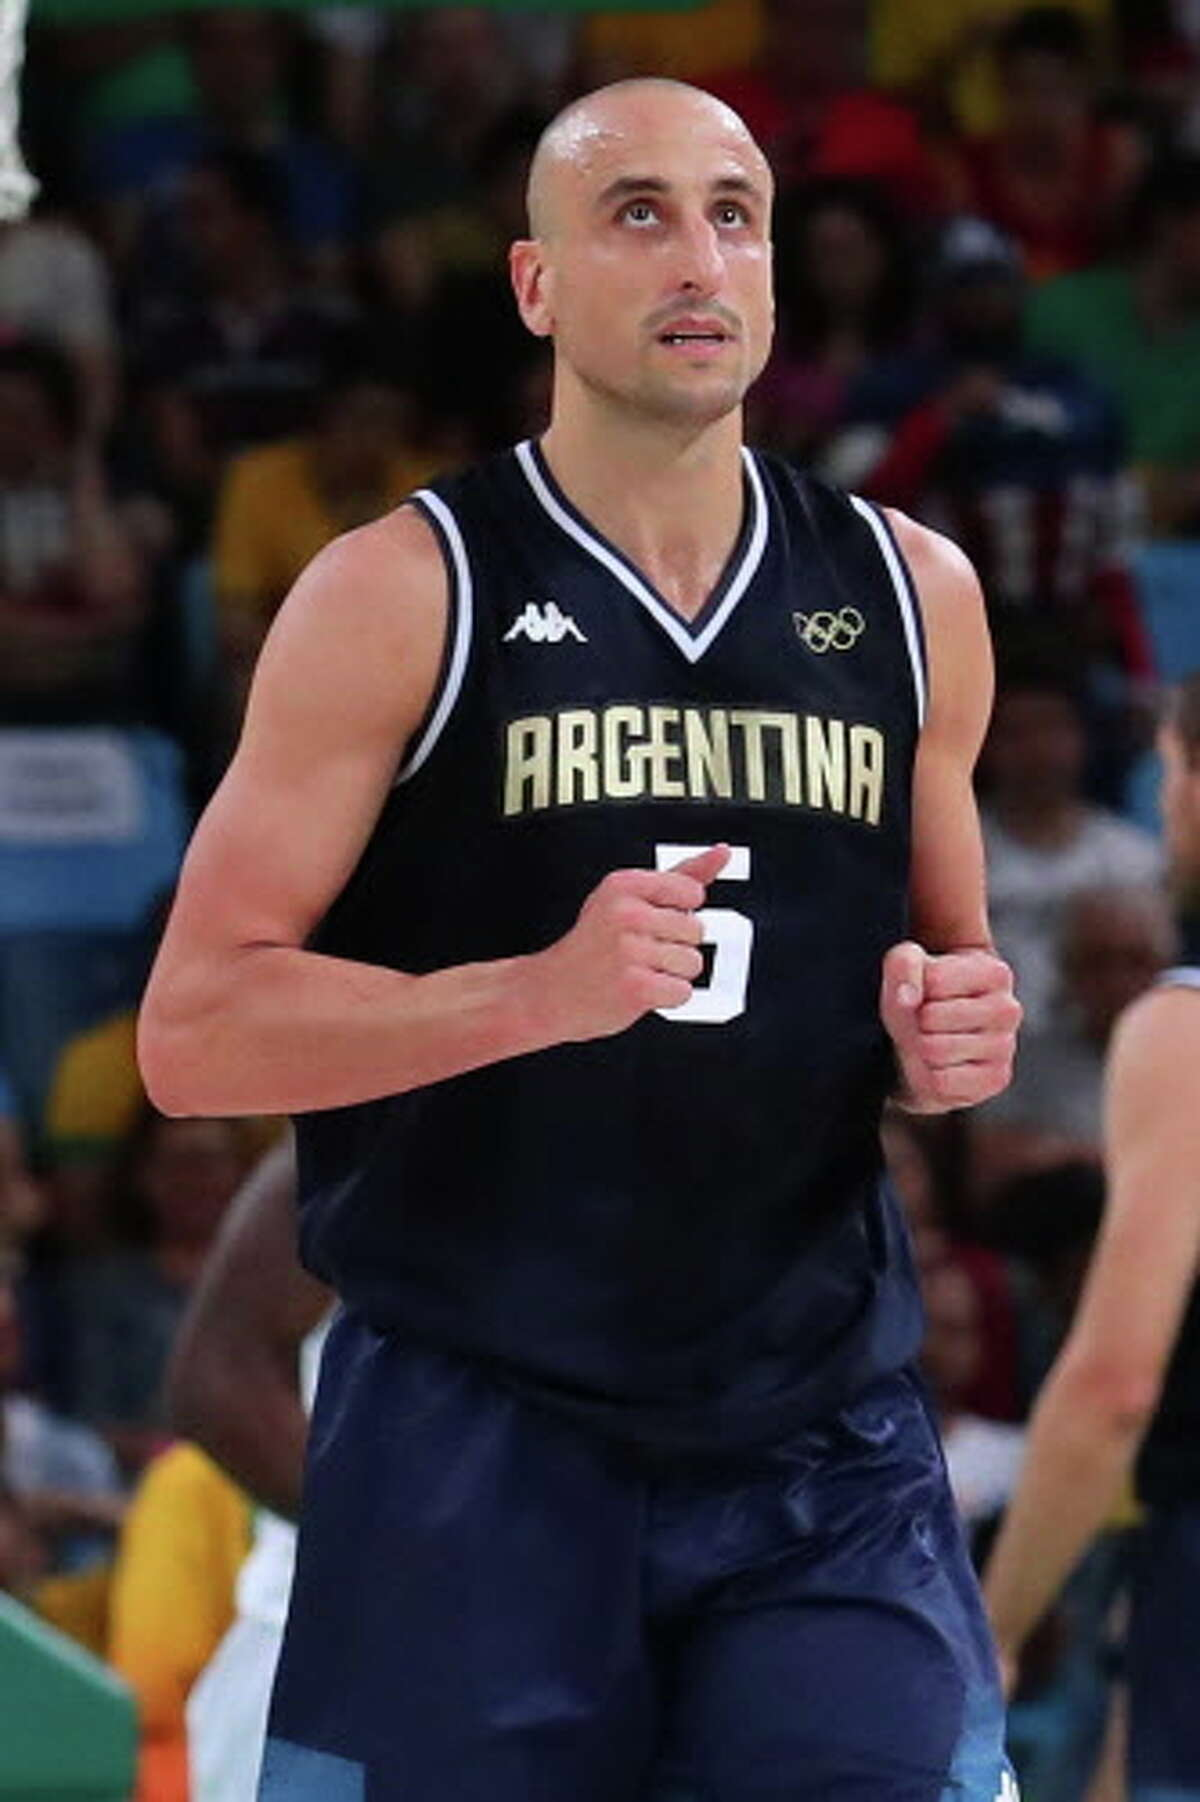 RIO DE JANEIRO, BRAZIL - AUGUST 17: Manu Ginobili #5 of Argentina reacts while taking on the United States during the Men's Basketball Quarterfinal game at Carioca Arena 1 on Day 12 of the Rio 2016 Olympic Games on August 17, 2016 in Rio de Janeiro, Brazil. (Photo by Tom Pennington/Getty Images)